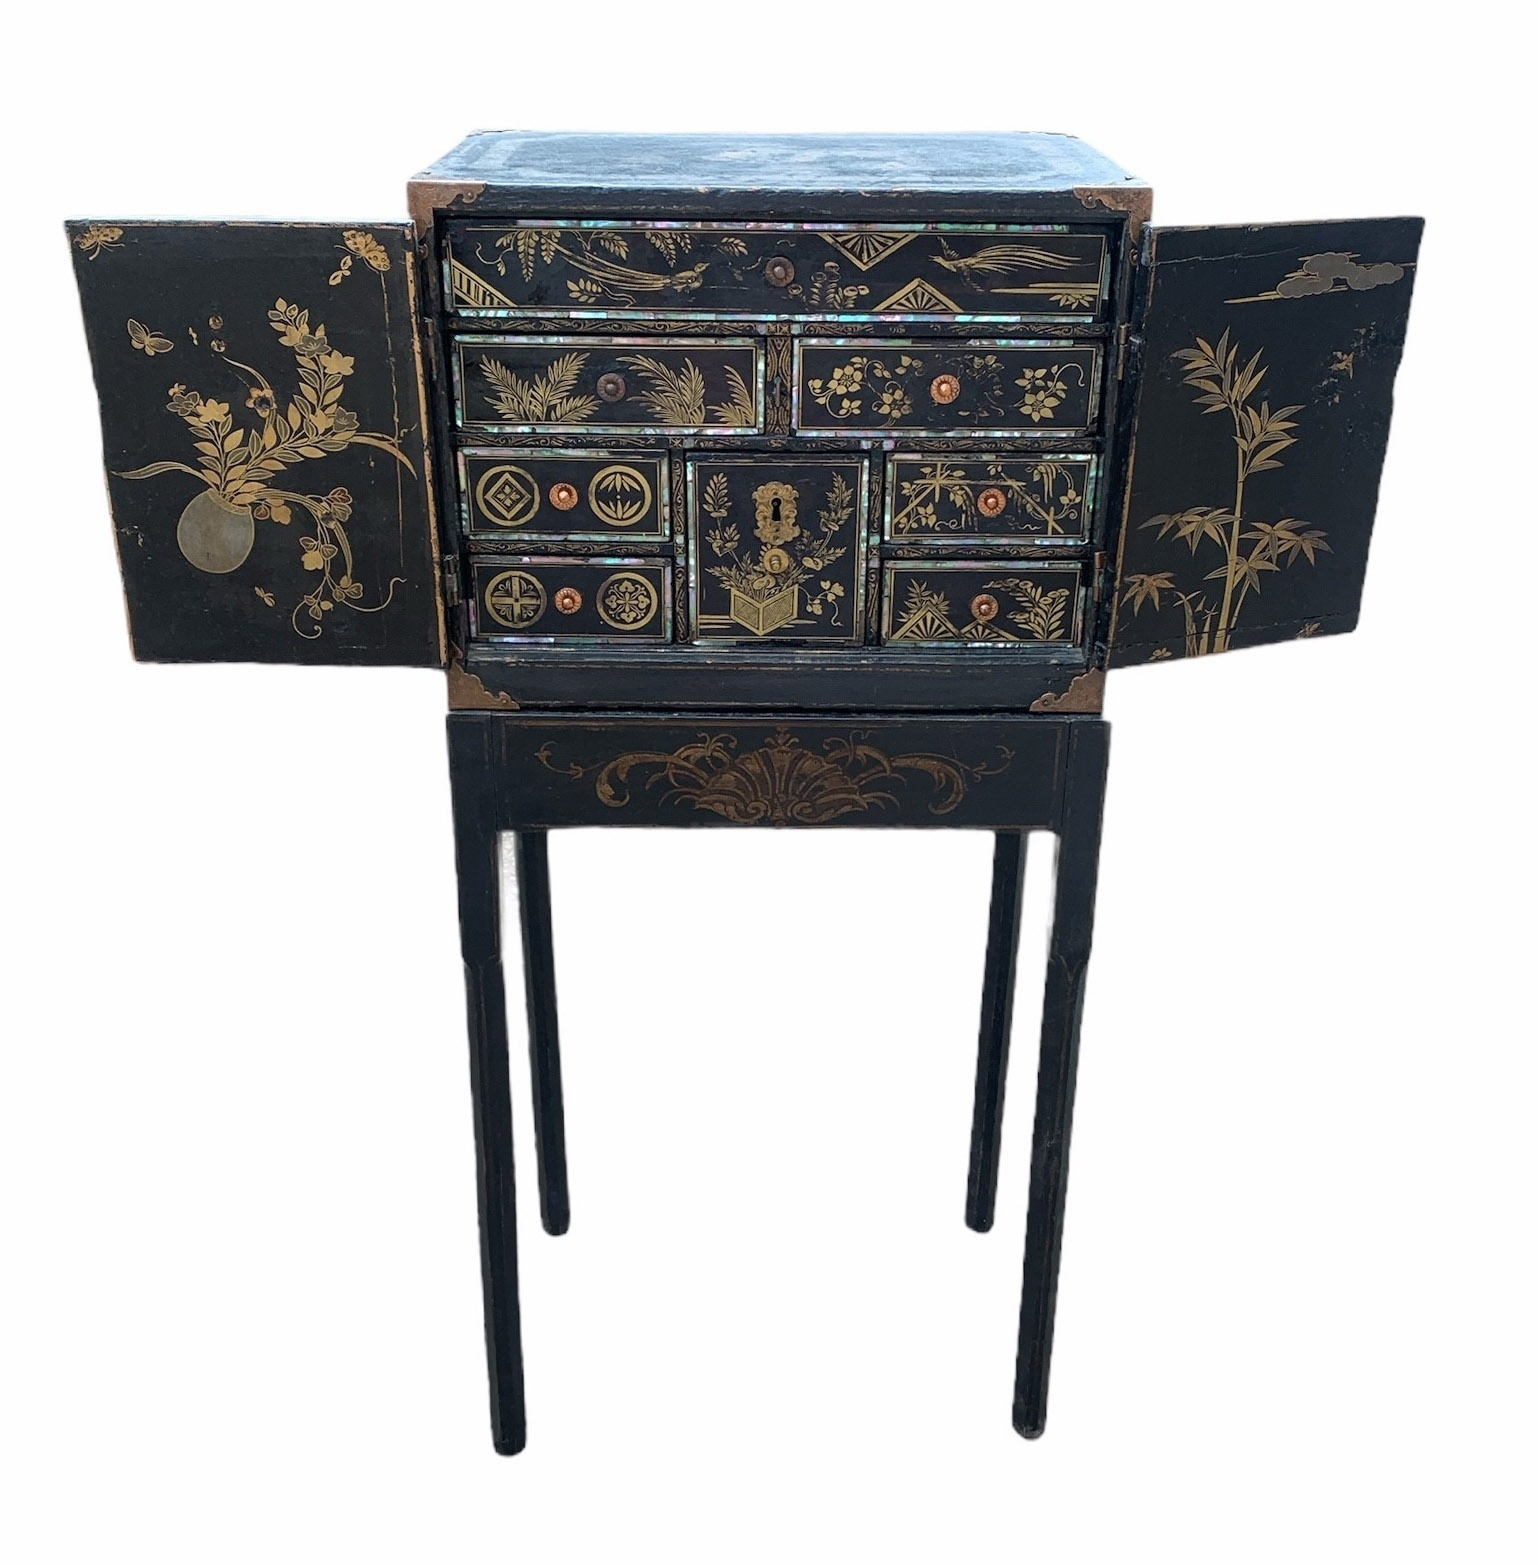 A PORTABLE INLAID EXPORT LACQUER NANBAN CABINET ON STAND Momoyama period (1573-1615) late 16th/early - Image 4 of 4